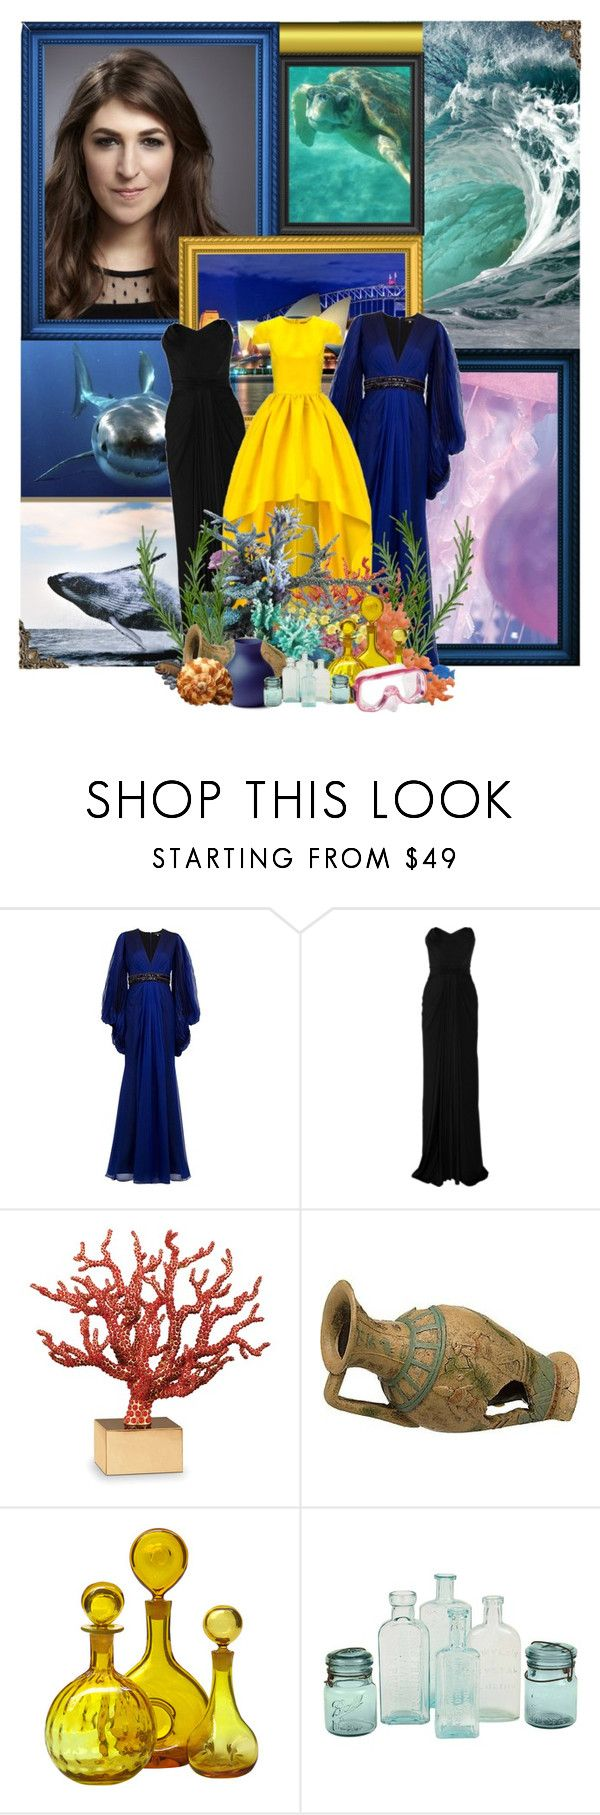 """""""""""Hey there, Mr. Grumpy Gills. When life gets you down do you wanna know what you've gotta do? Just keep swimming. Just keep swimming. Just keep swimming, swimming, swimming. What do we do? We swim, swim."""" Finding Nemo 2003"""" by storycosmicjasmine ❤ liked on Polyvore featuring Andrew Gn, Zac Posen, Katie Ermilio, L'Objet, Reef and Blenko"""